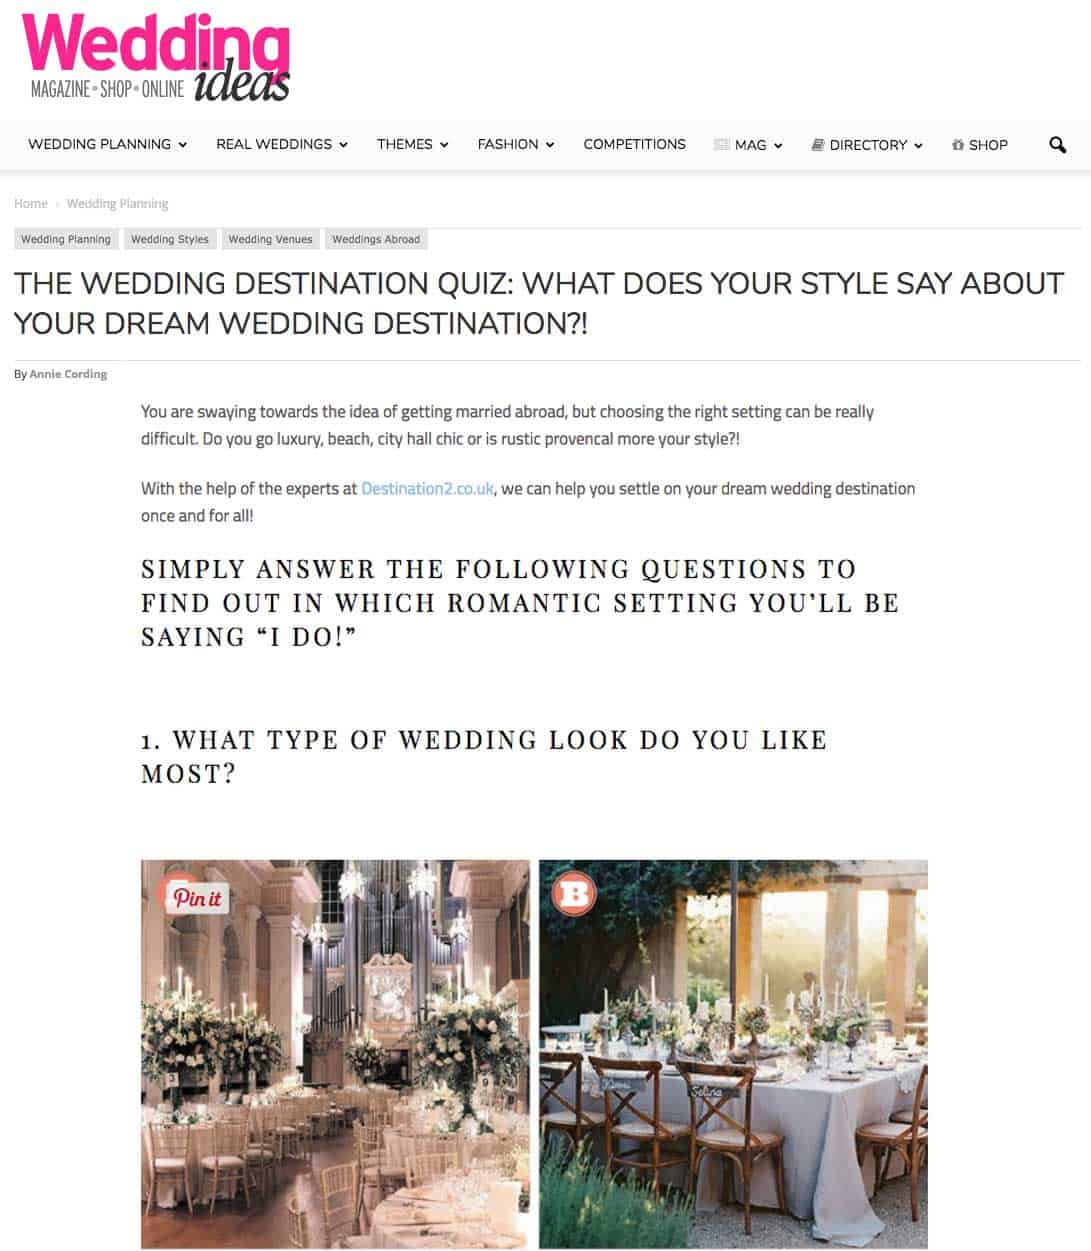 The Wedding Destination Quiz: What Does Your Style Say About Your Dream Wedding Destination?!